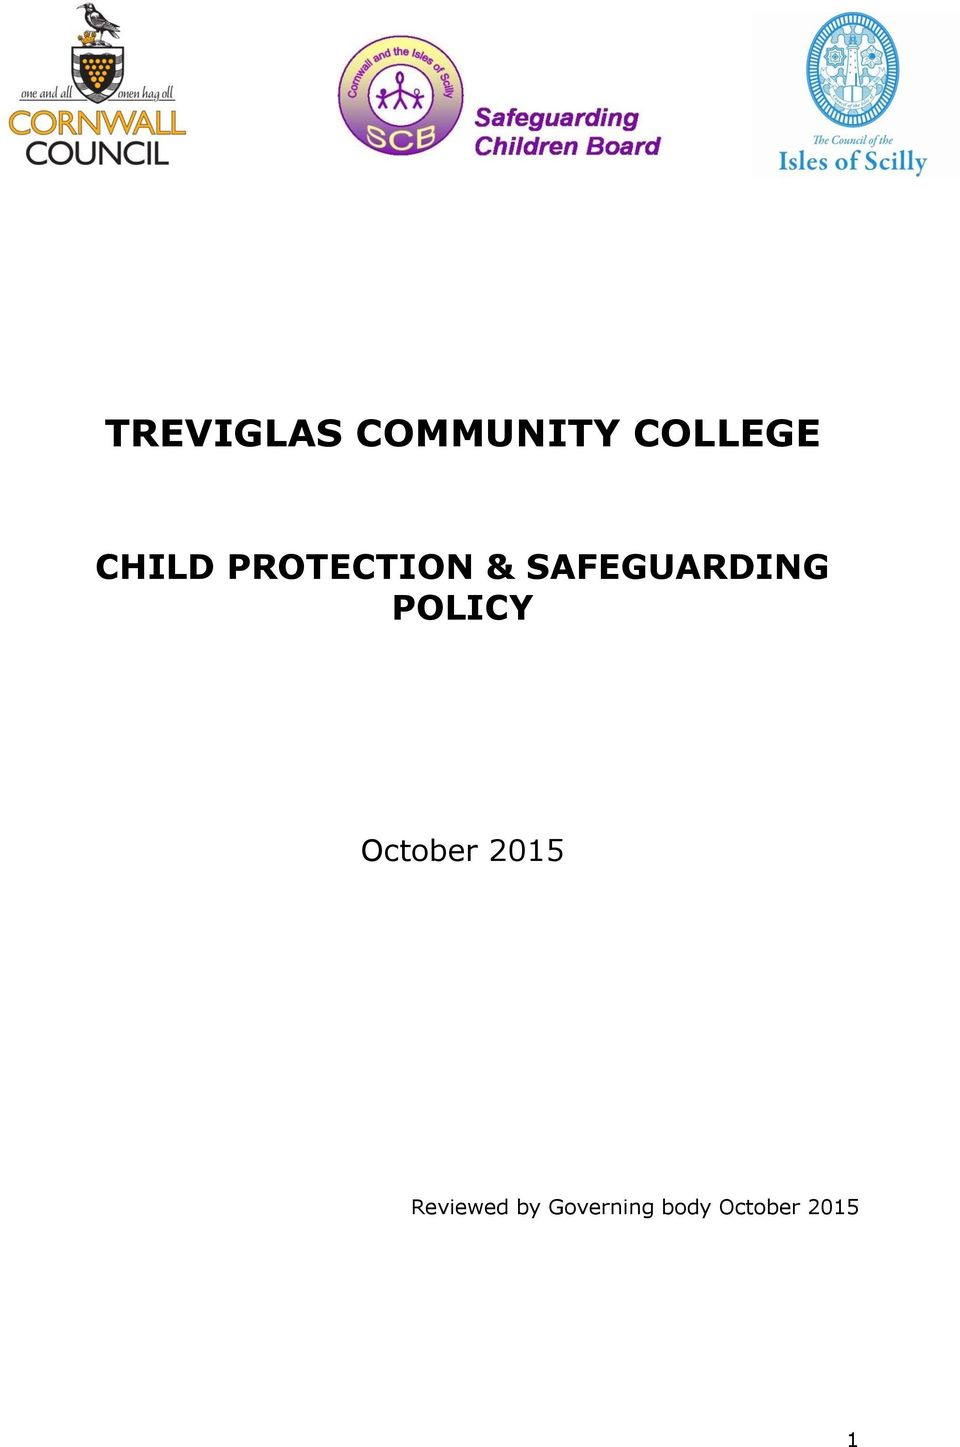 SAFEGUARDING POLICY October